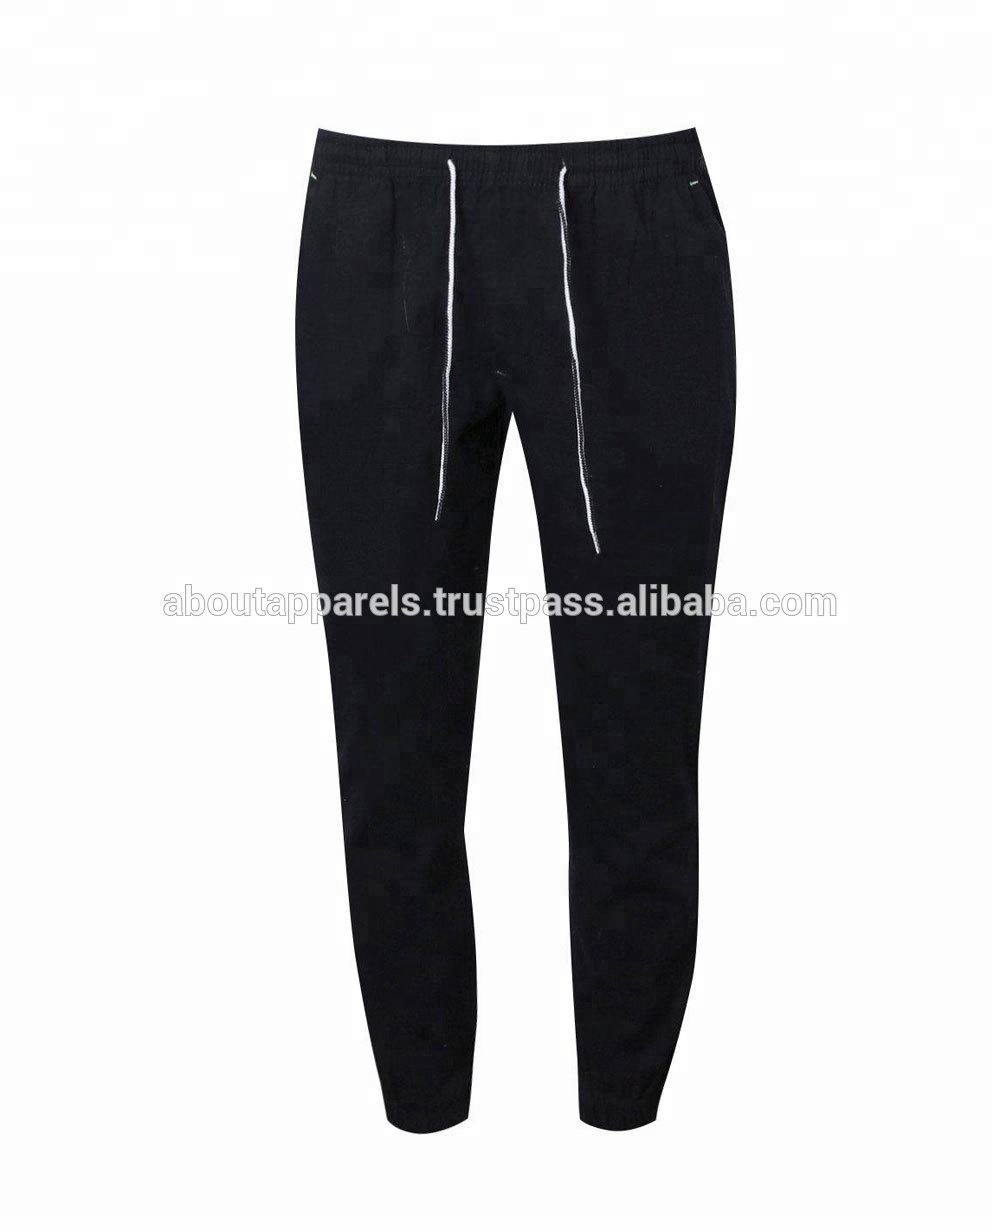 Painters work pants High quality cotton customize men work cargo trousers